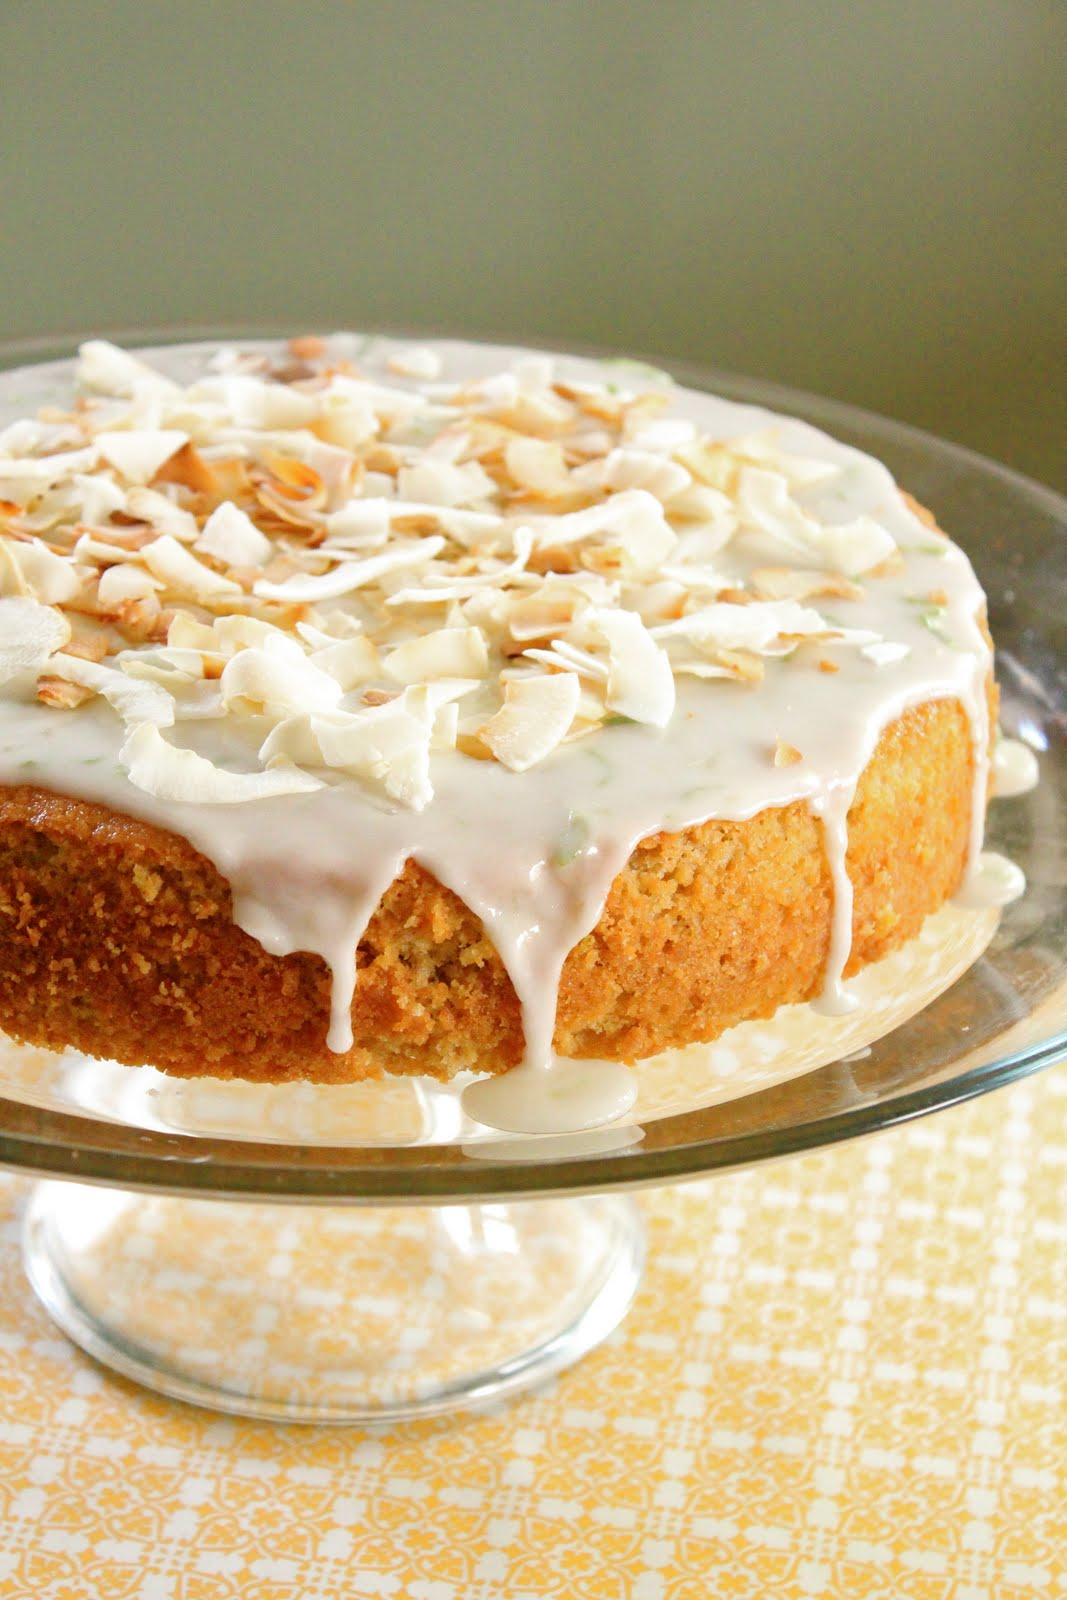 Lime and coconut cake | Eat Good 4 Life